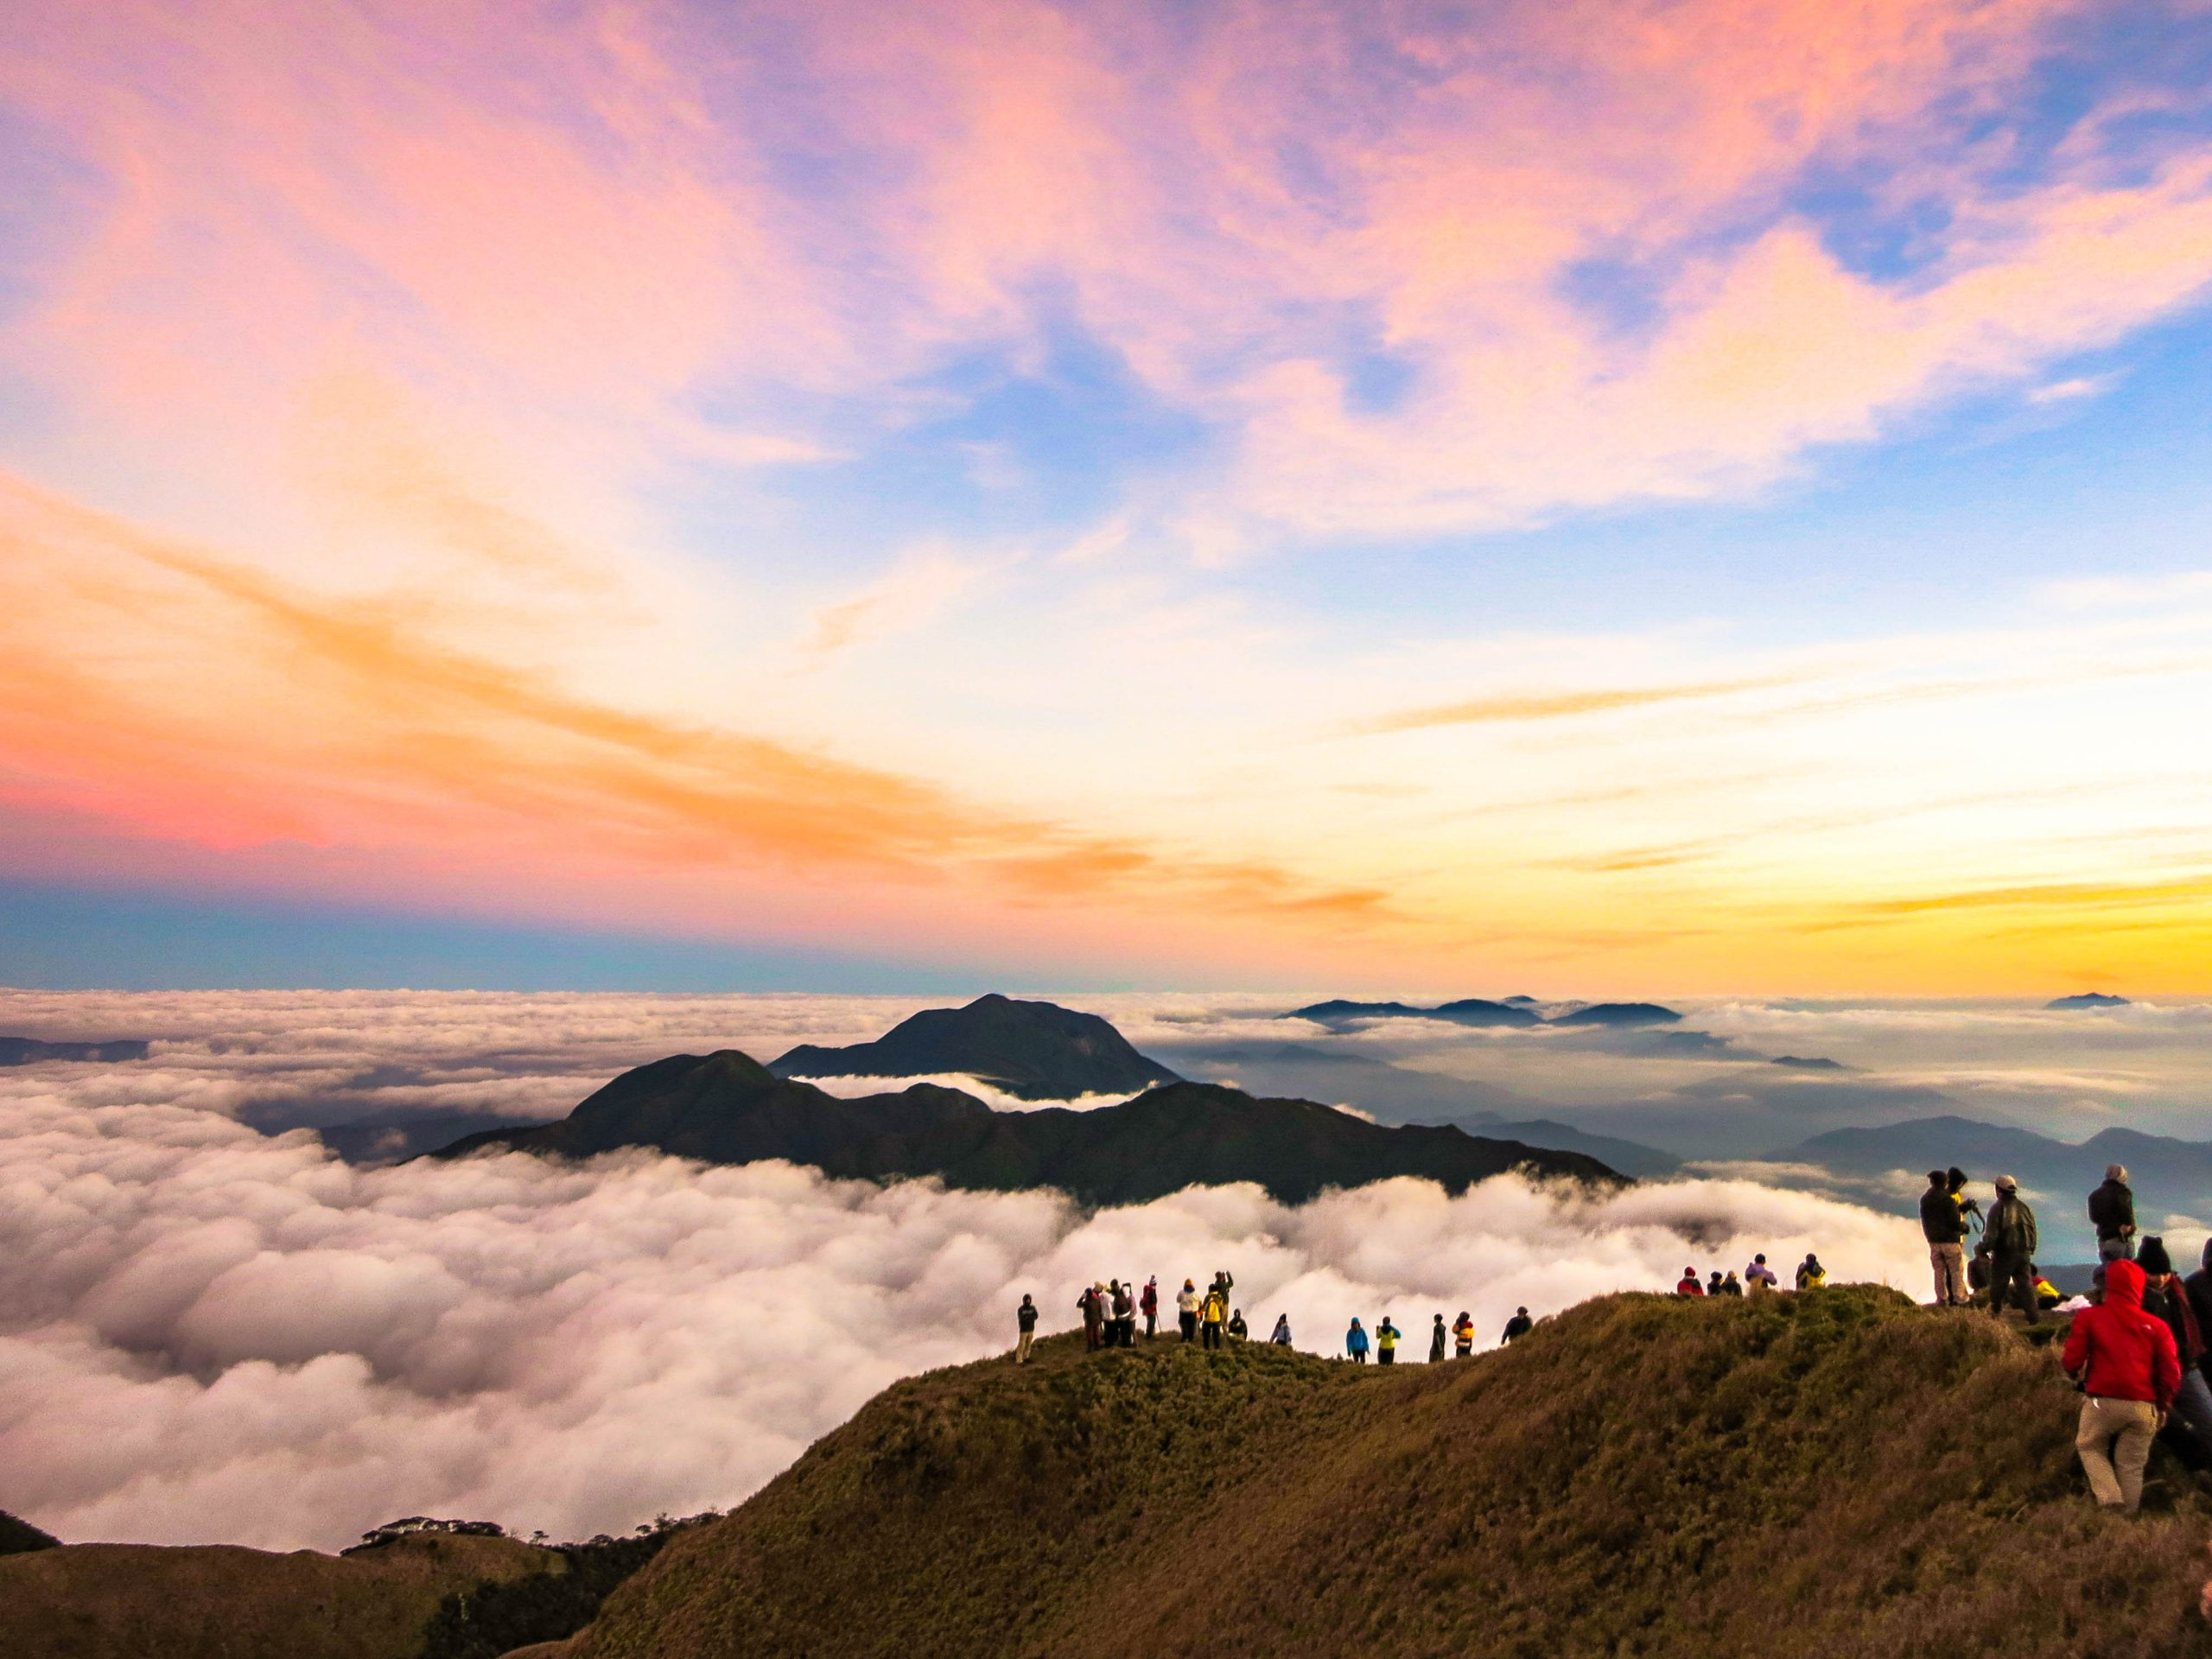 Groups of people stand upon a lofty ridge overlooking a mountainous landscpe covered in clouds